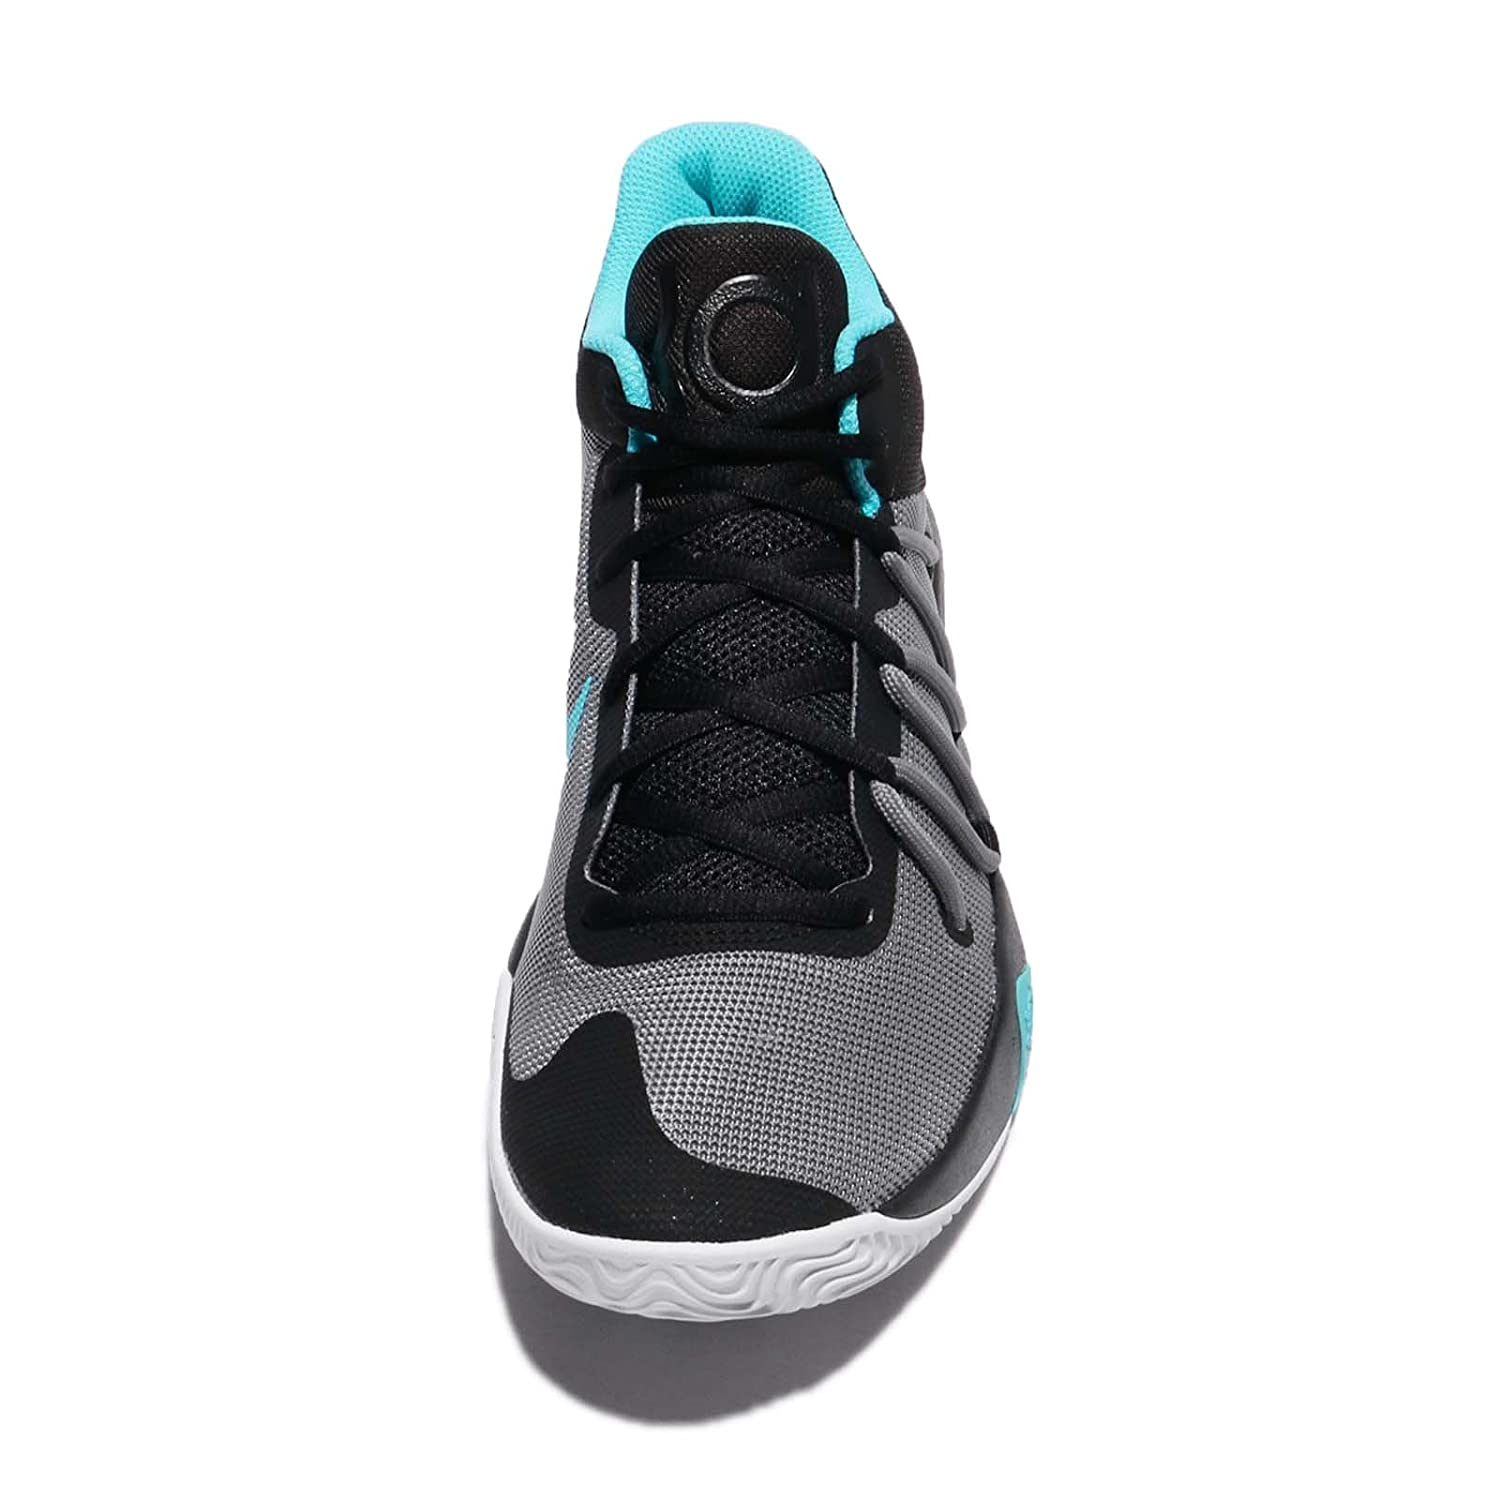 f3a25ab86ec Amazon.com  NIKE KD Trey 5 V EP Mens Basketball Shoes 921540-004 Size 10  D(M) US  Health   Personal Care